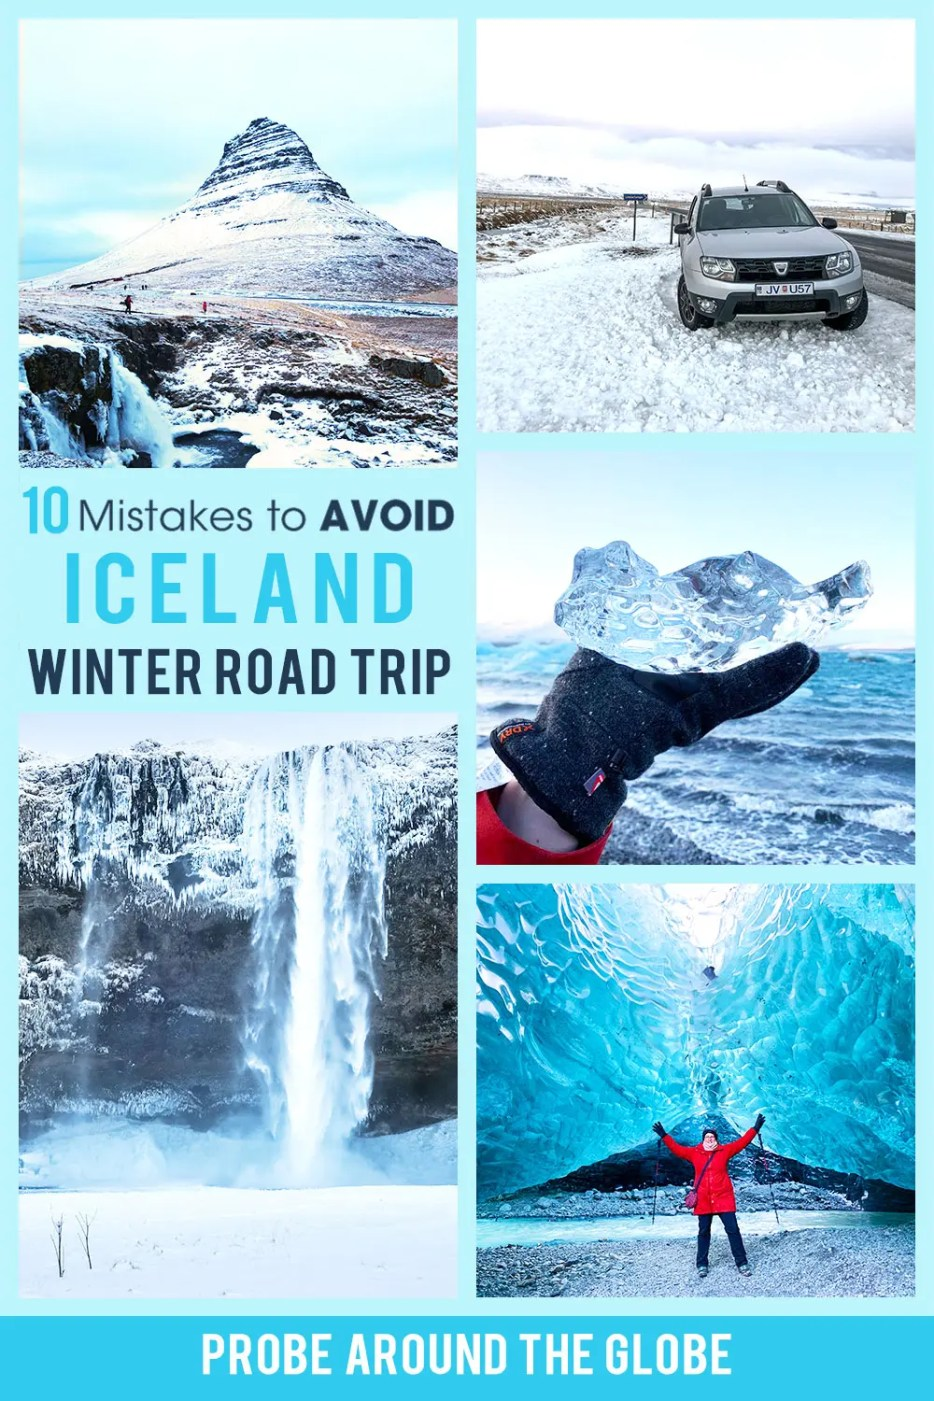 Read these 10 mistakes to avoid driving Iceland in winter to make sure you'll have a fun and safe Iceland winter road trip.